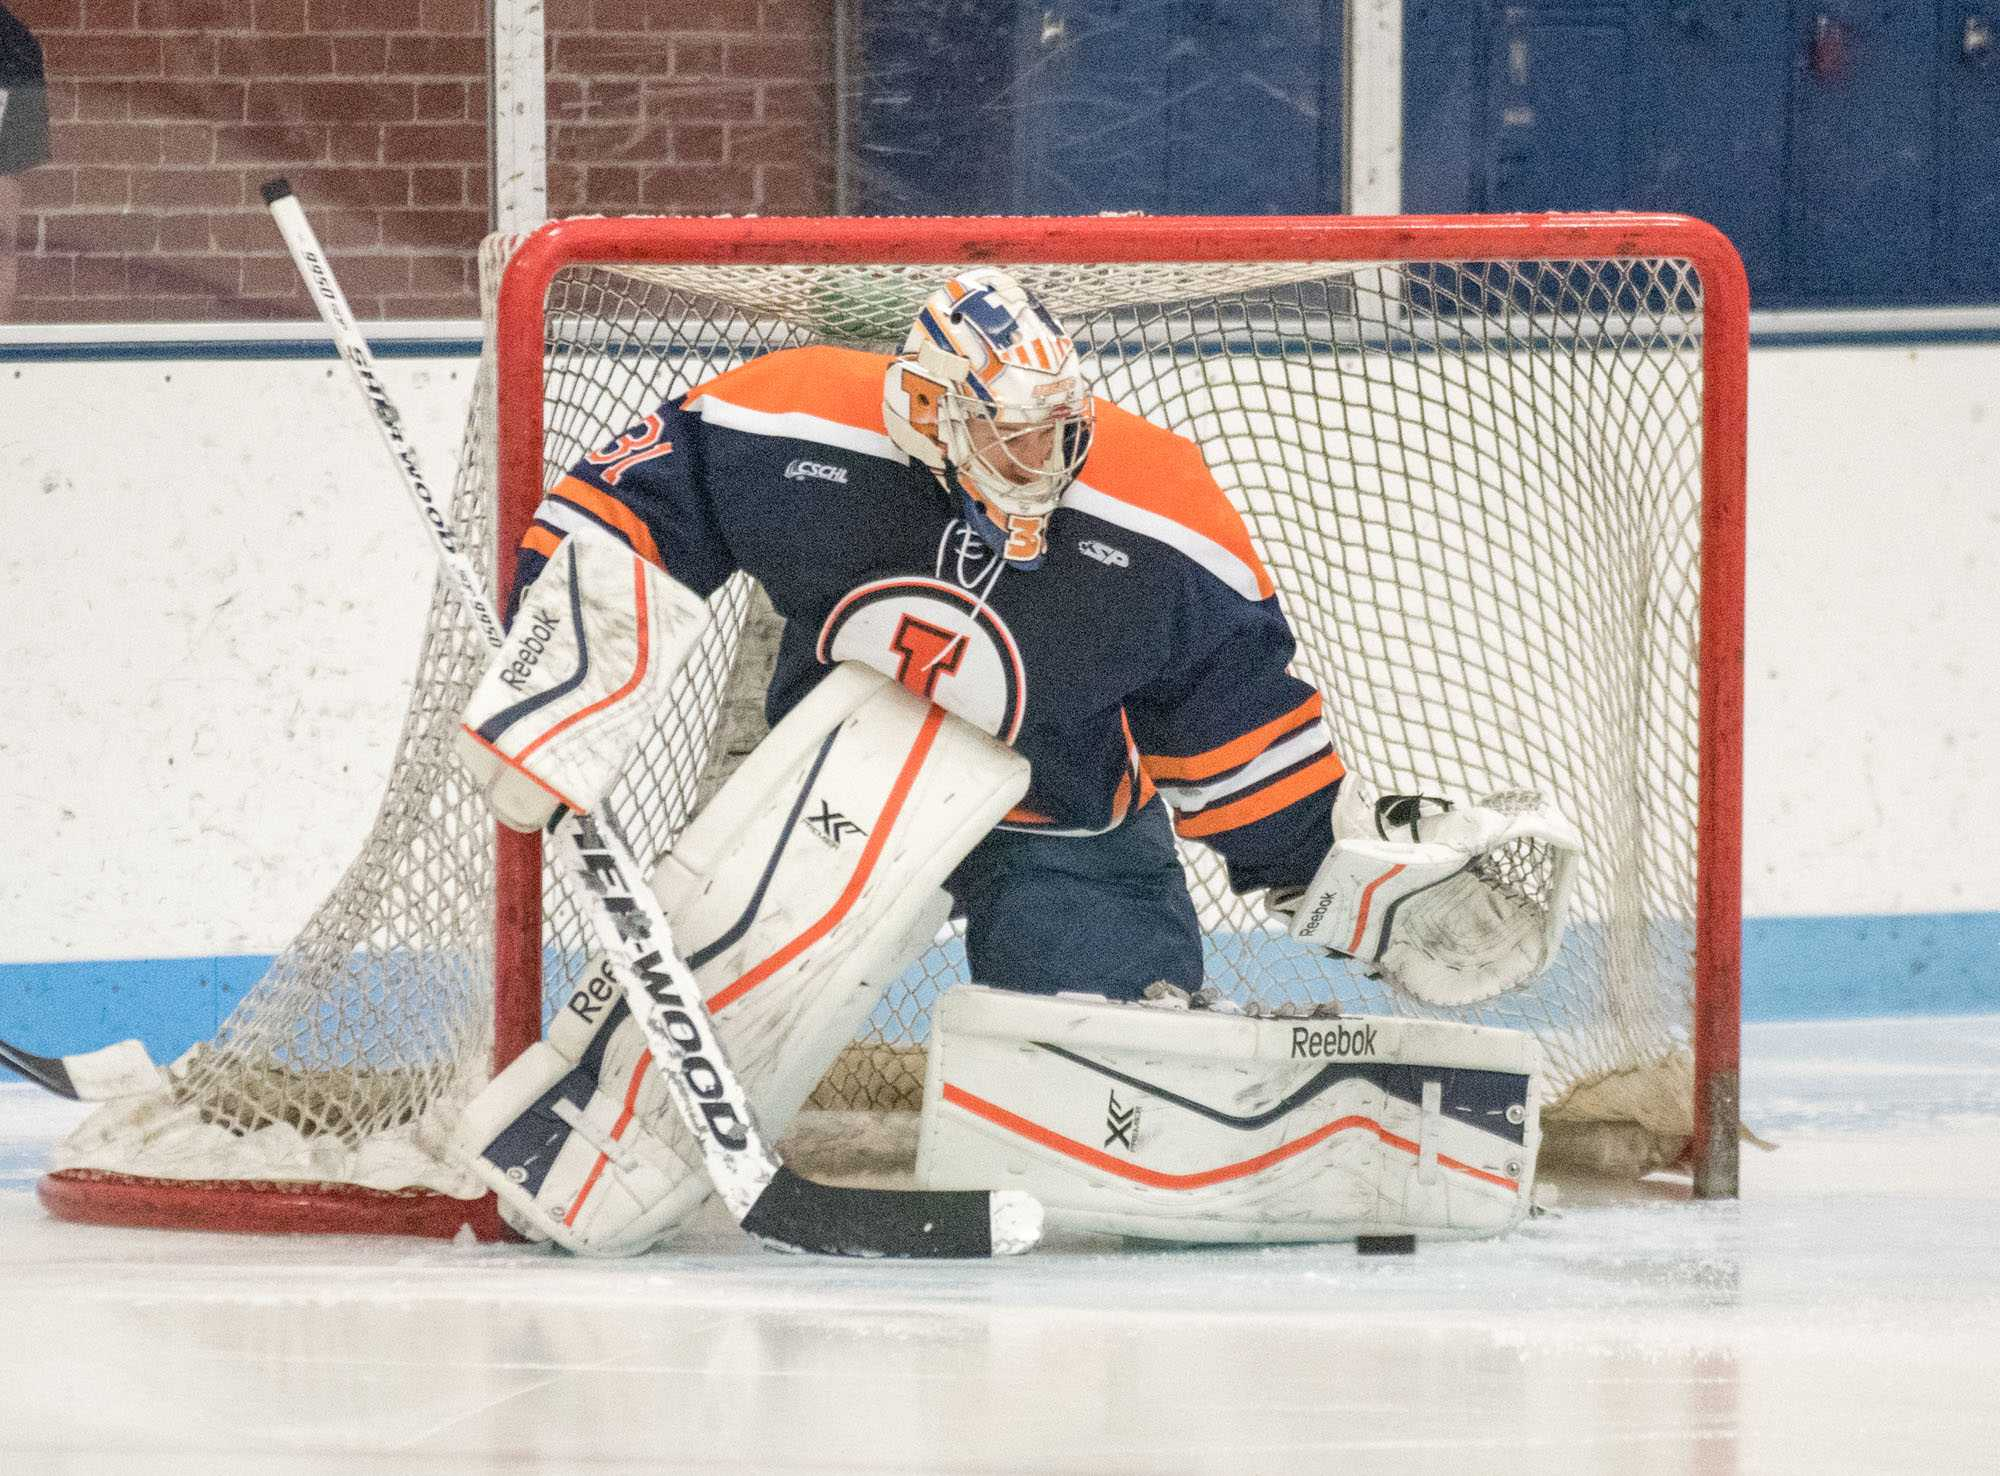 With+senior+captain+John+Olen+out%2C+little+brother+Joe+shines+with+an+80-save+weekend+while+Illini+leaders+continue+to+carry+the+team+offensively+